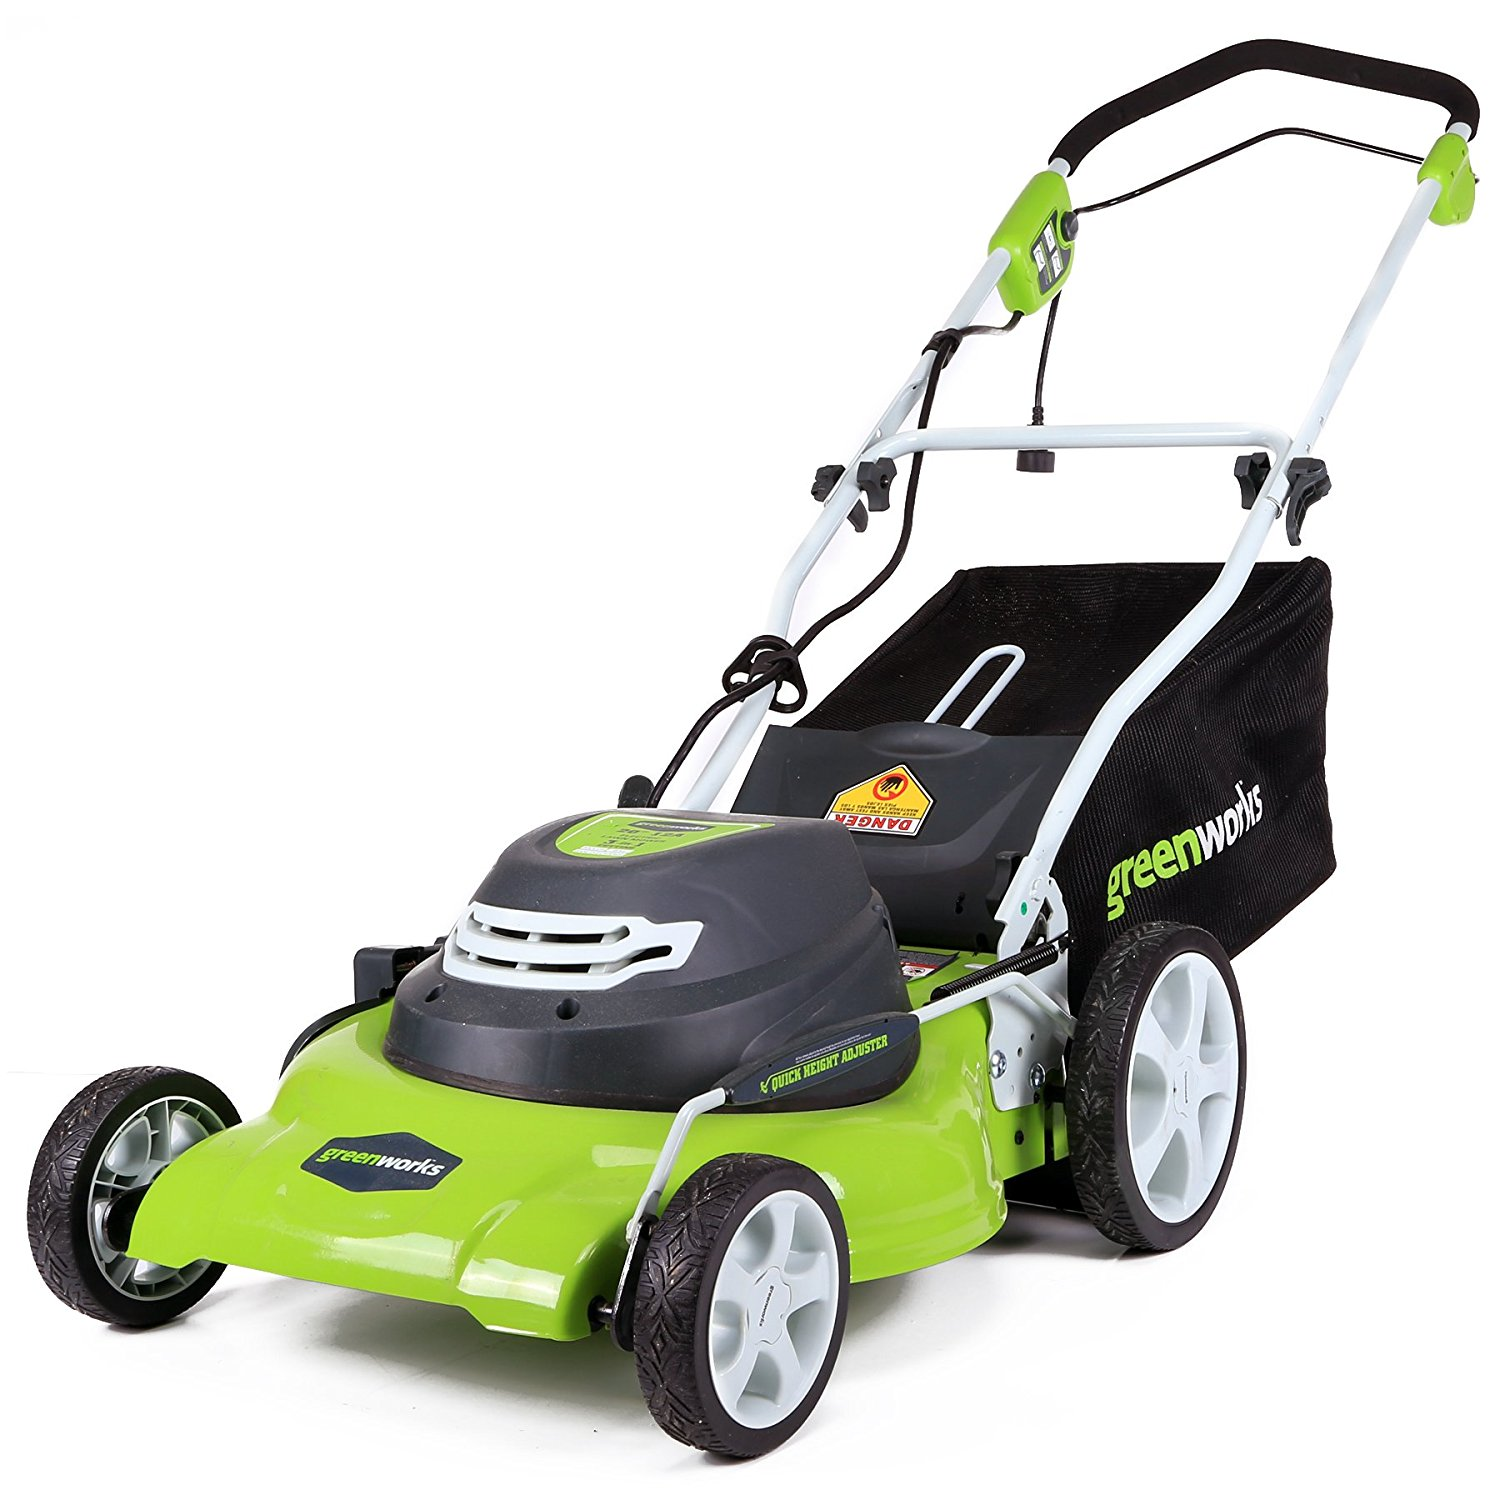 Amp Corded 20-Inch Lawn Mower